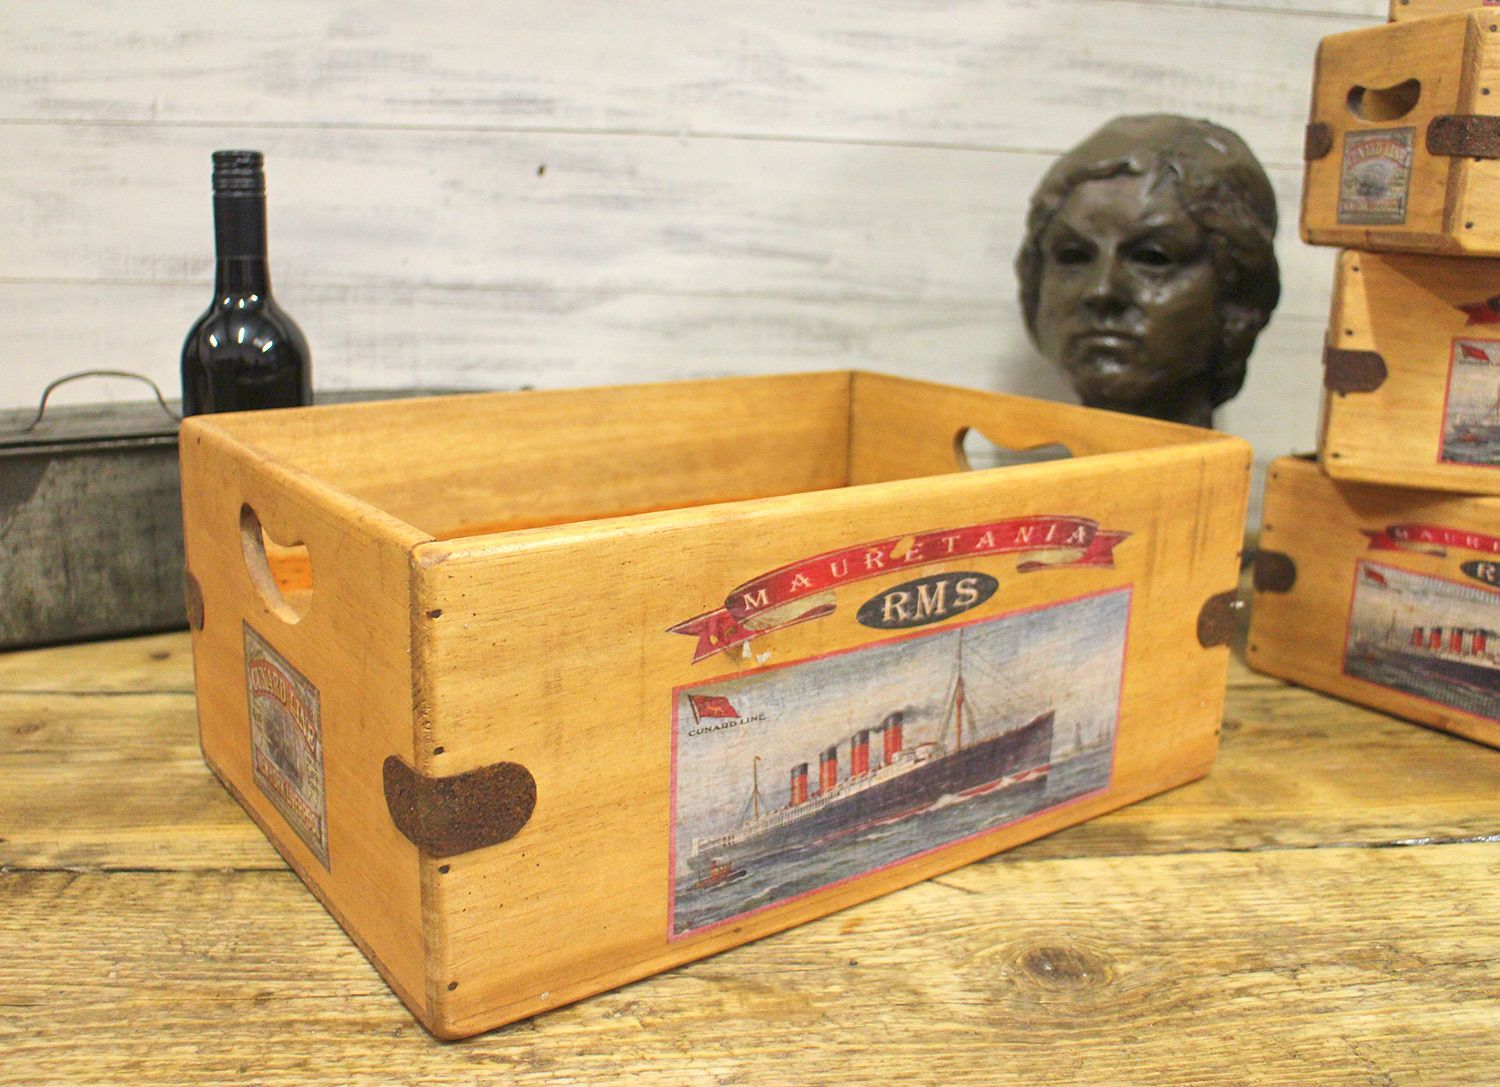 Rms mauretania cunard vintage box wooden storage crate for Re storage crate